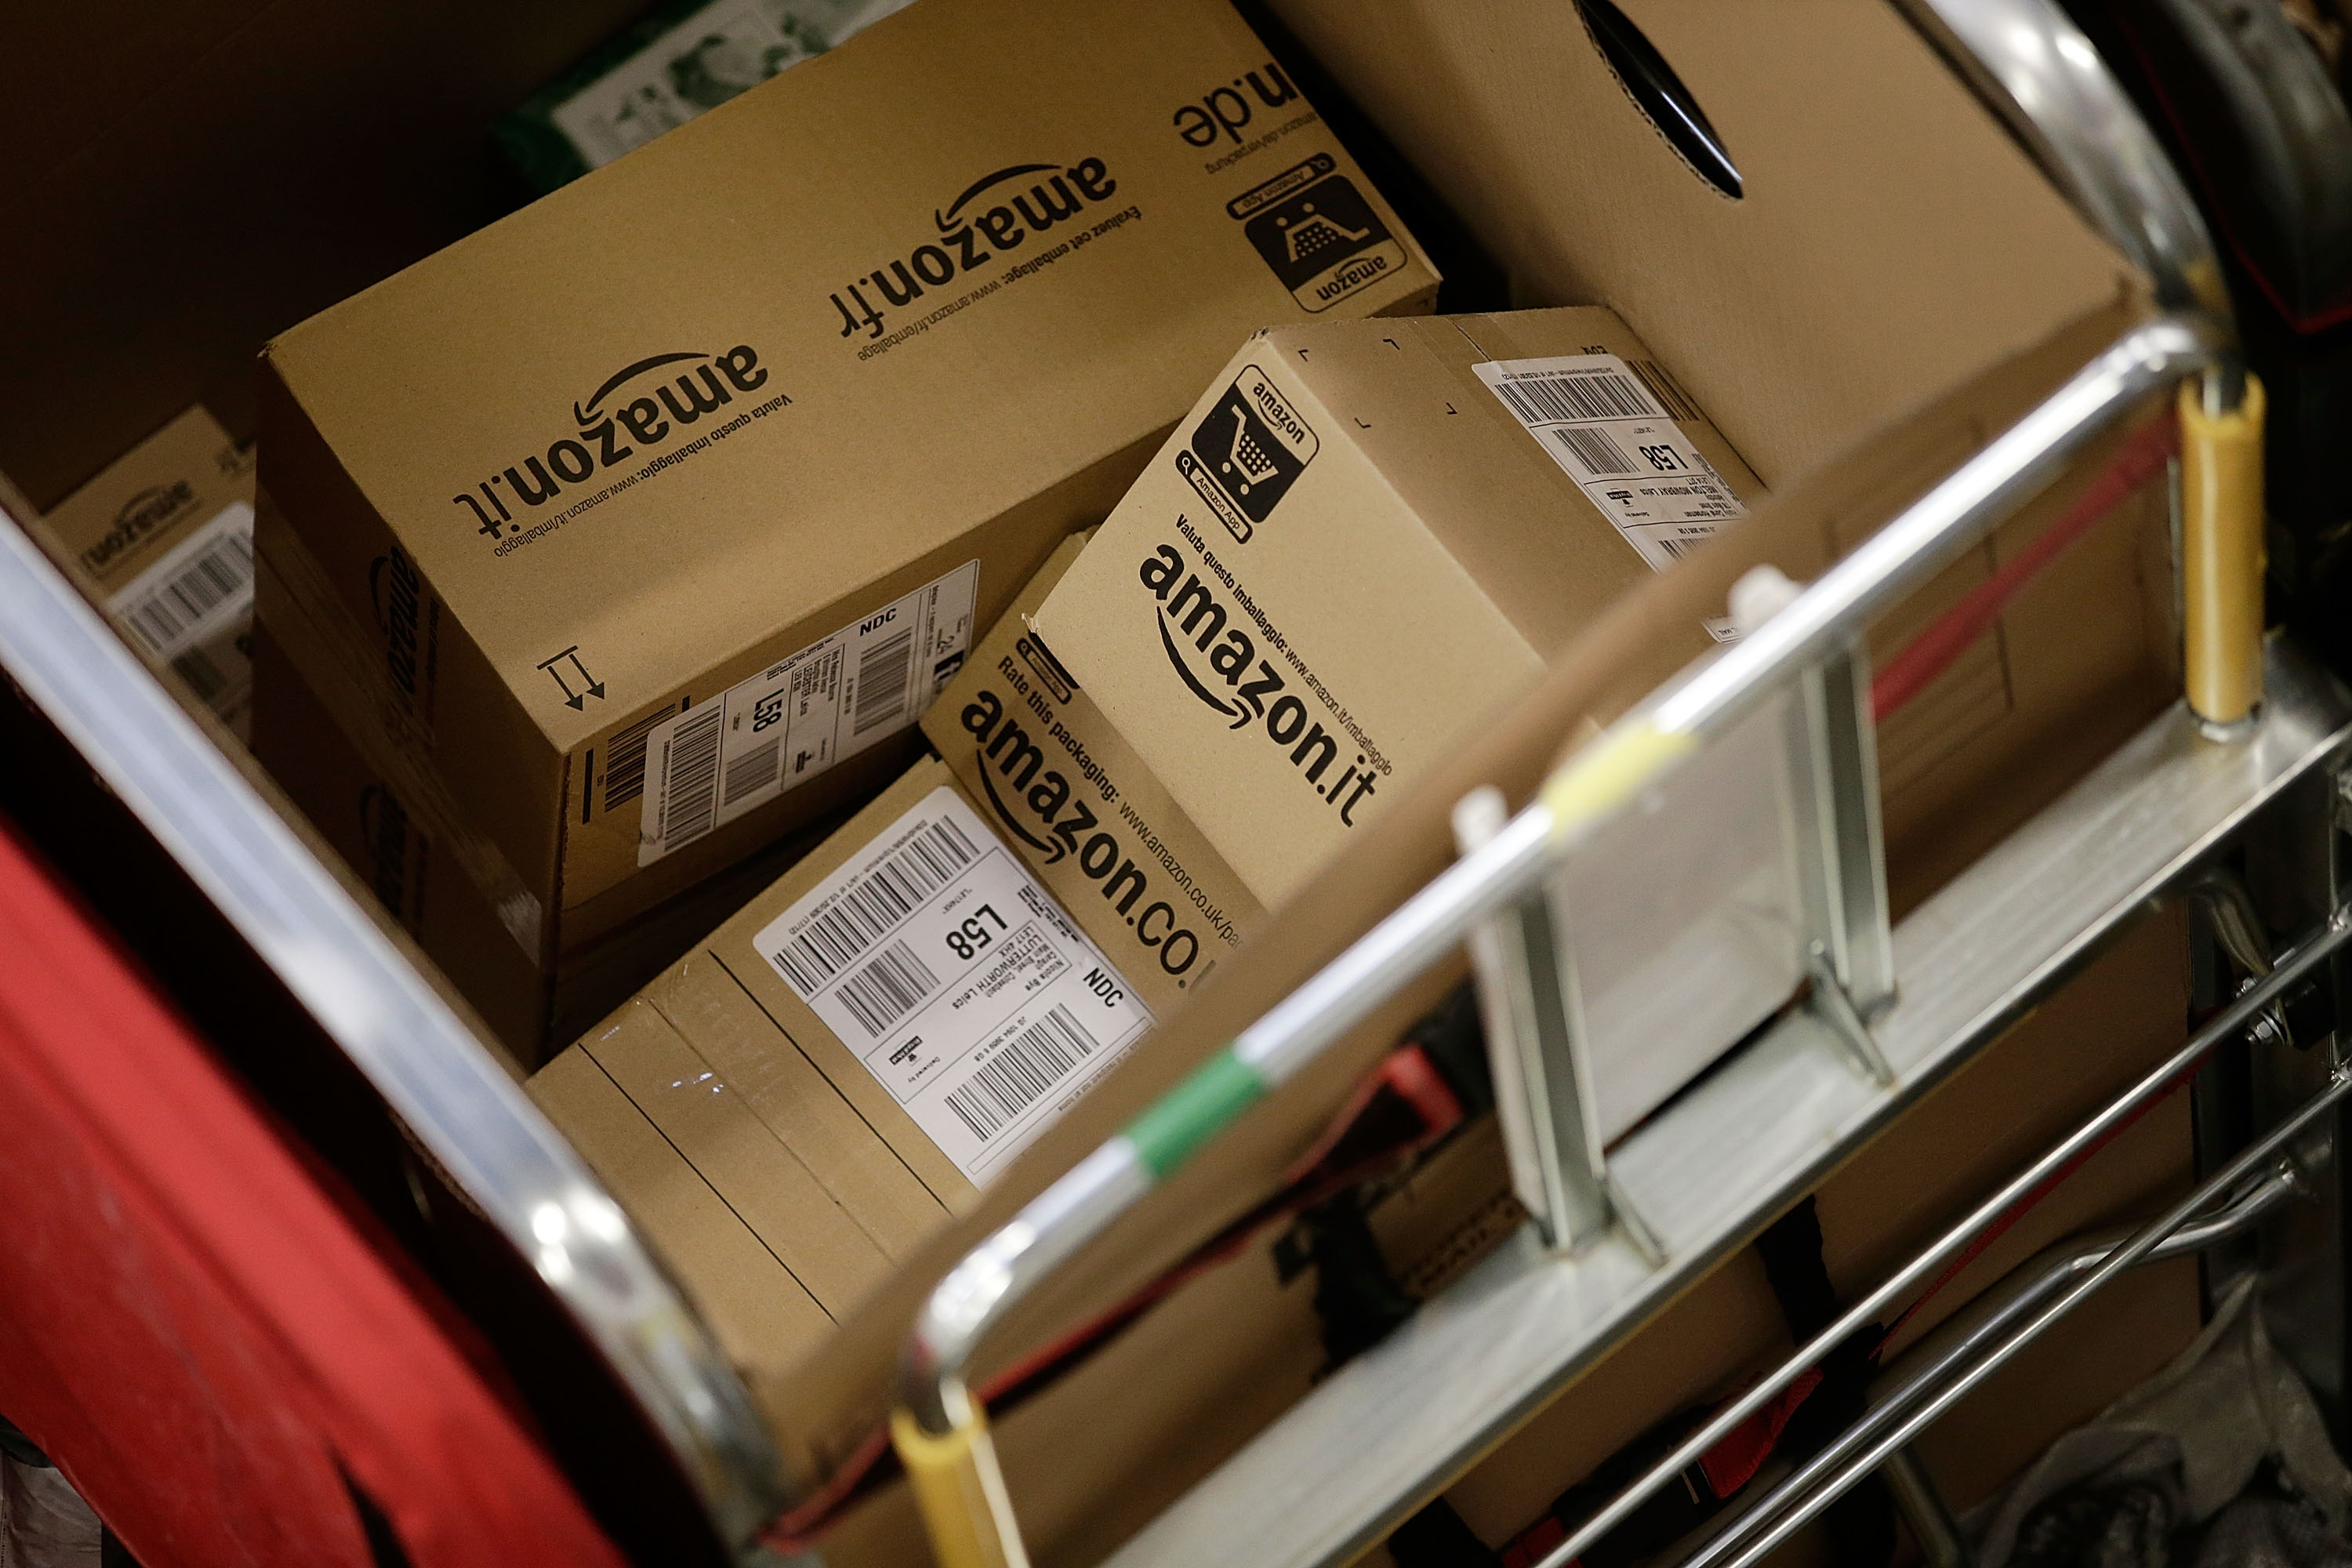 Amazon giving out $20 gift cards to those affected by Christmas delivery mishap from UPS and FedEx